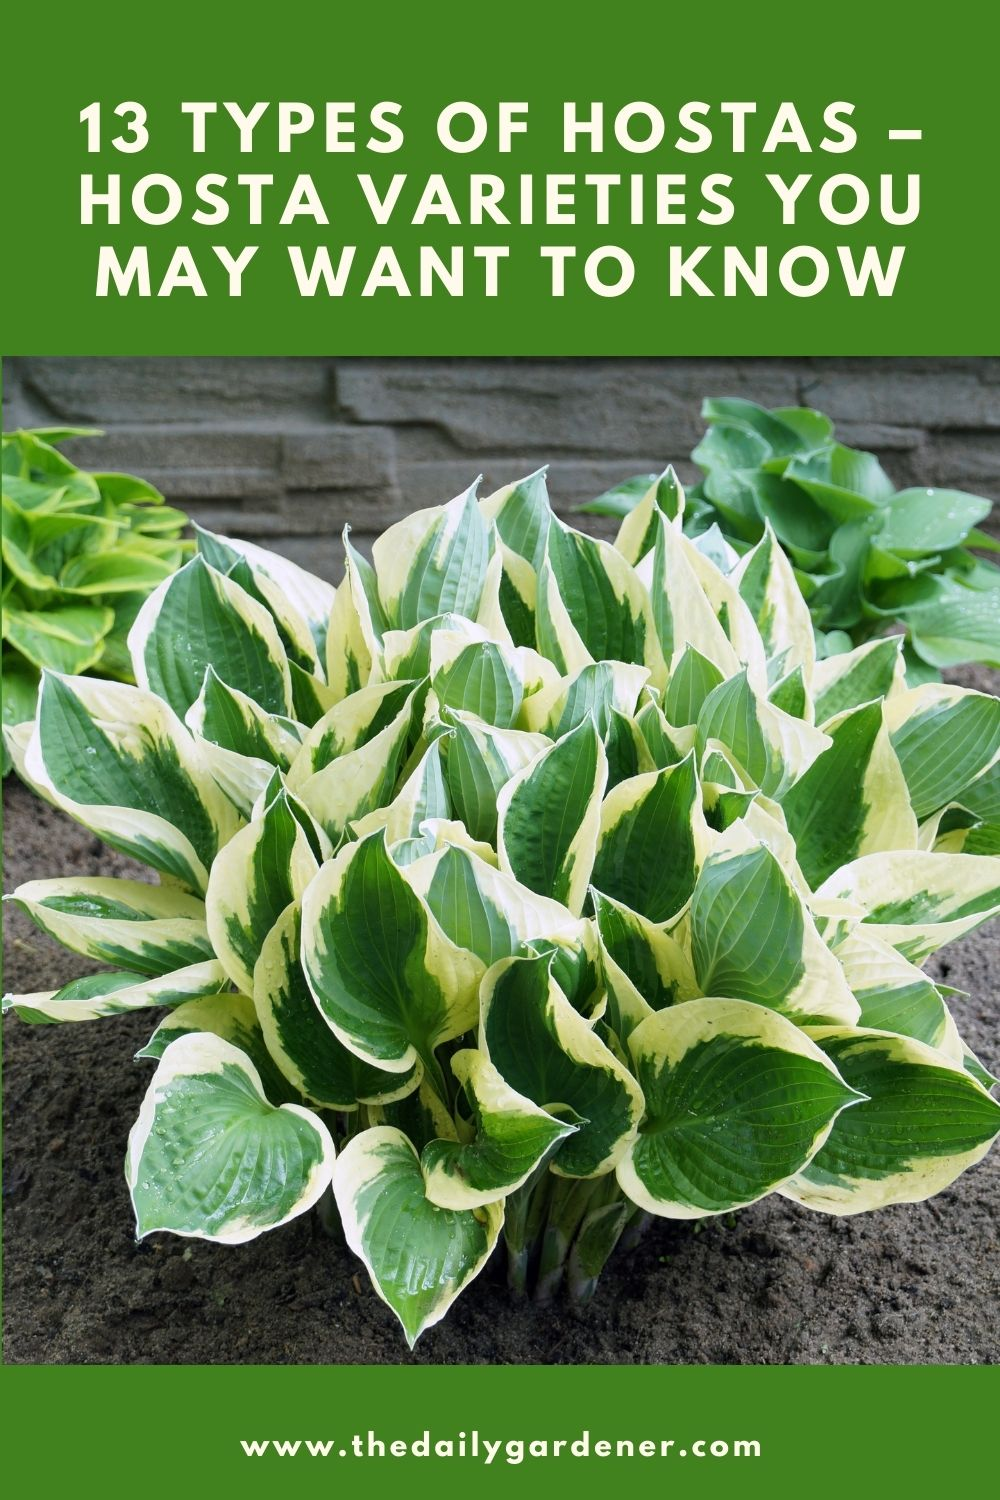 13 Types of Hostas - Hosta Varieties You May Want to Know